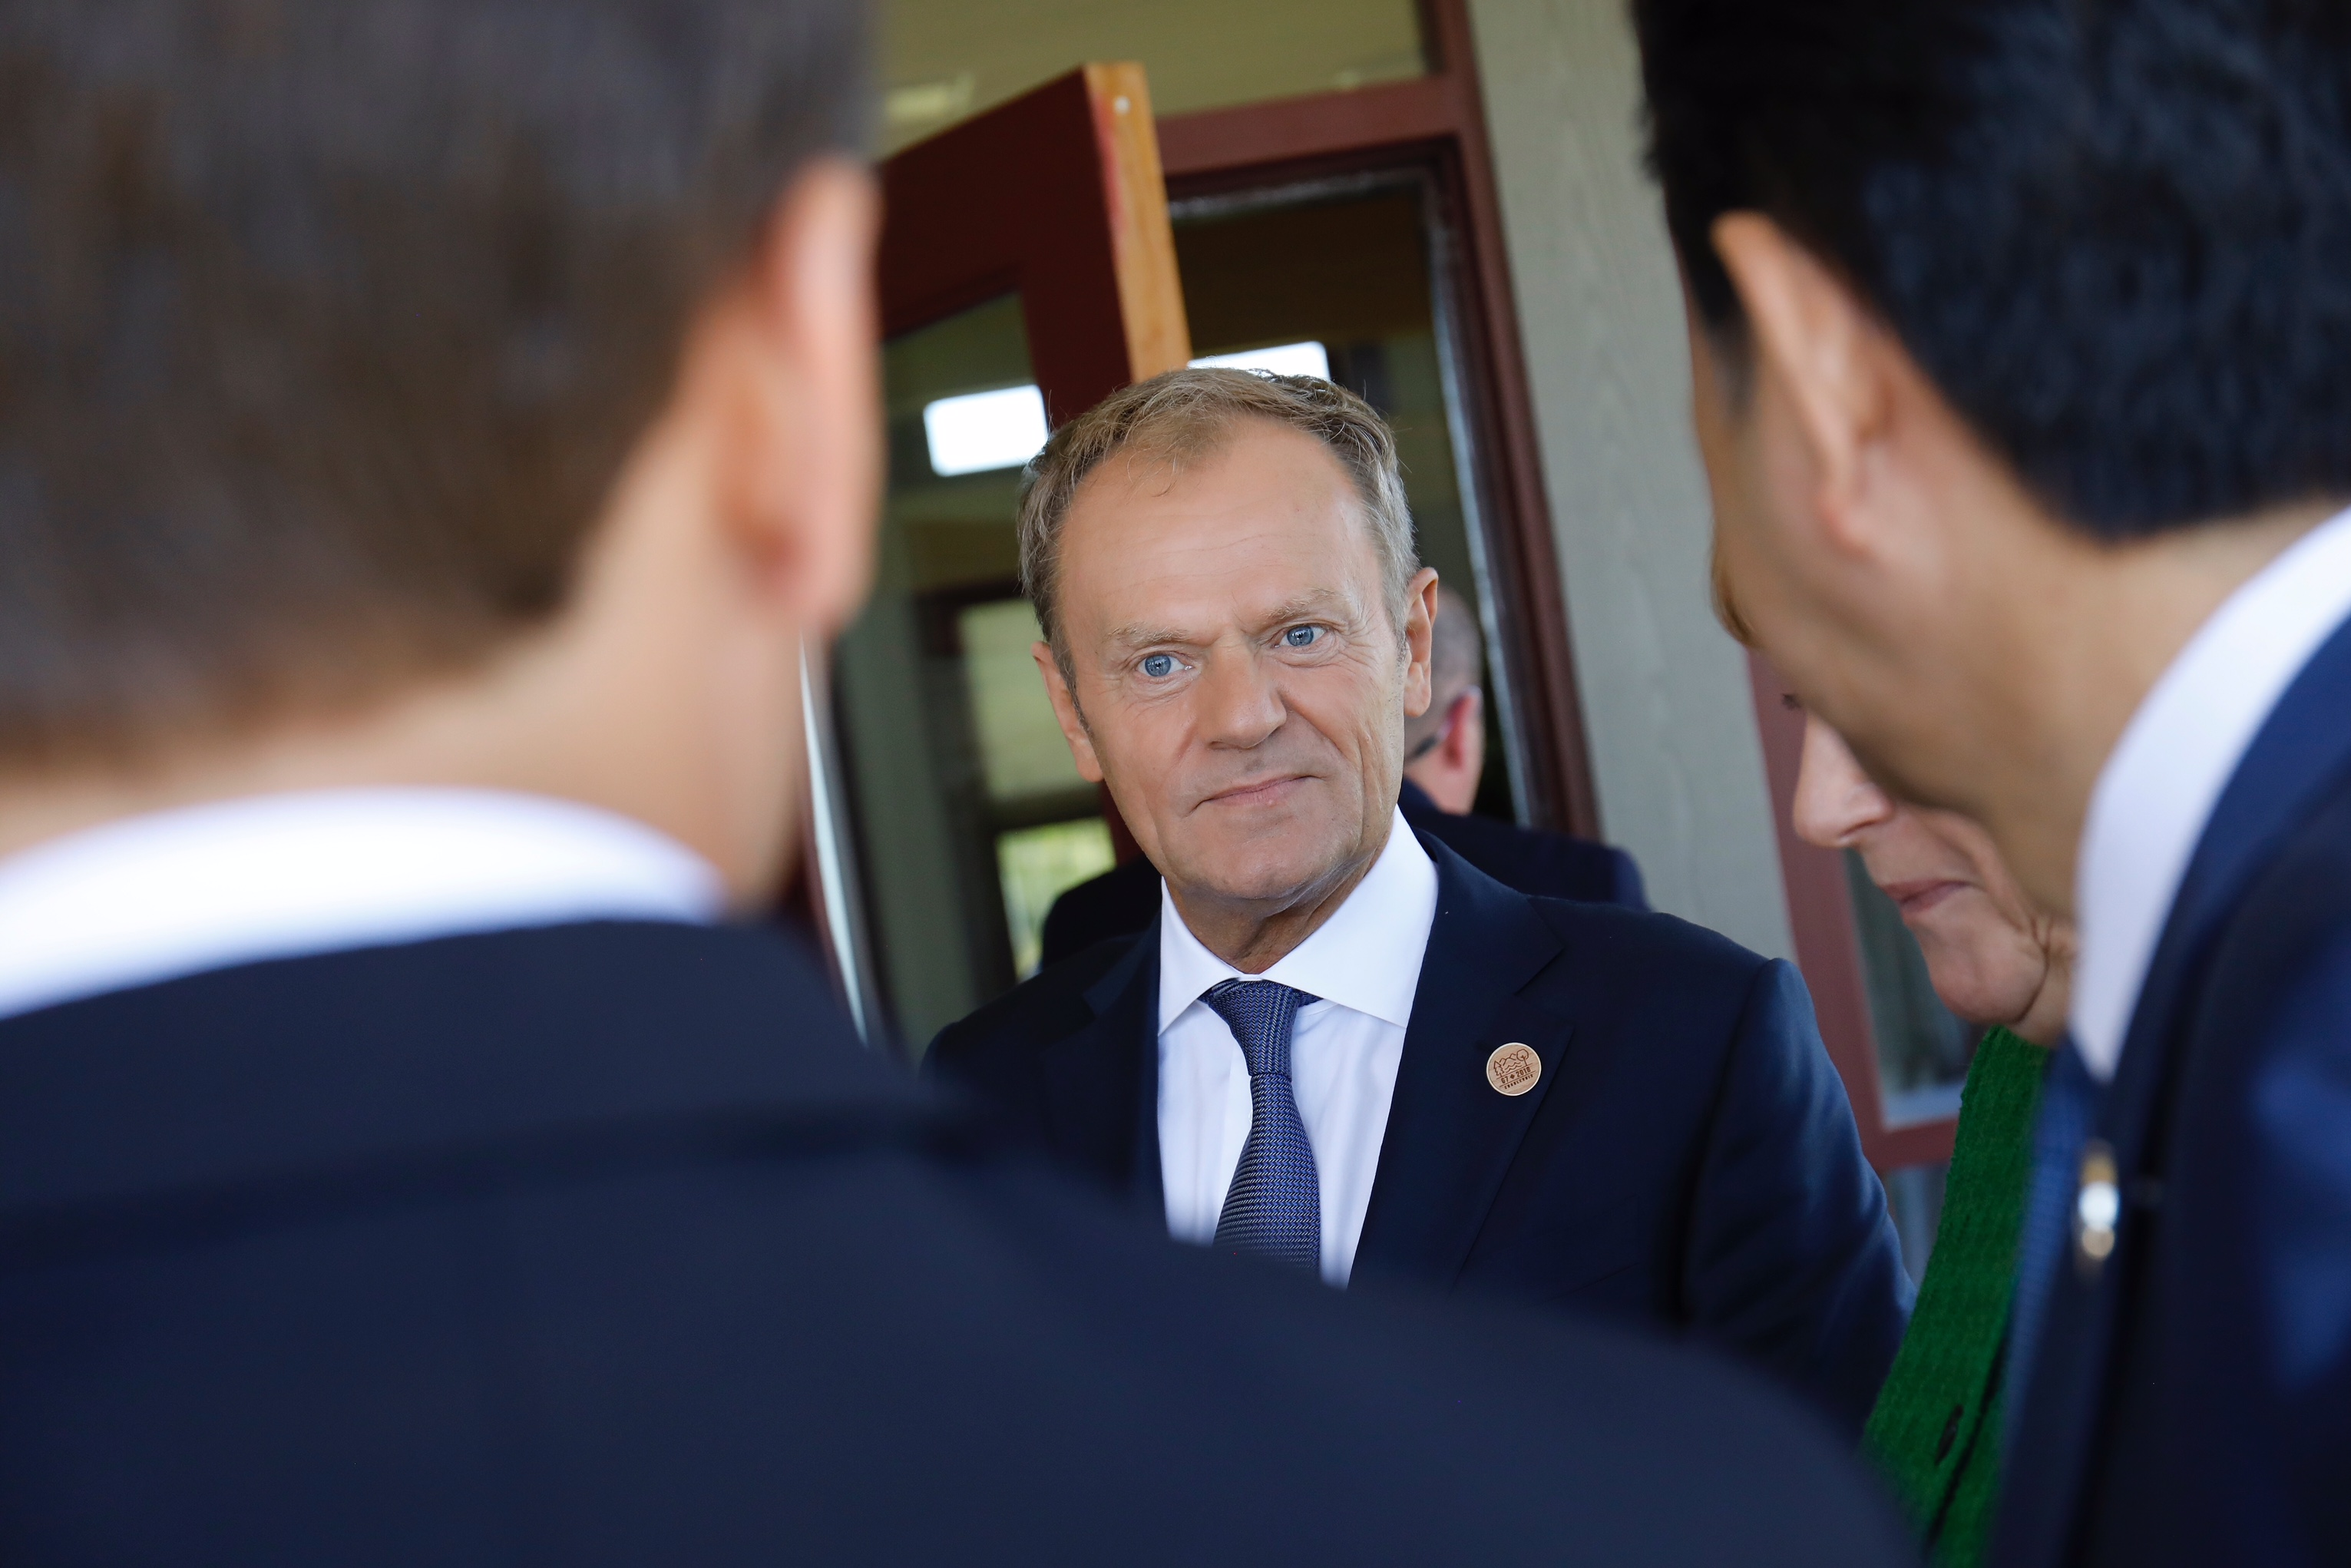 Mr Donald TUSK, President of the European Council.